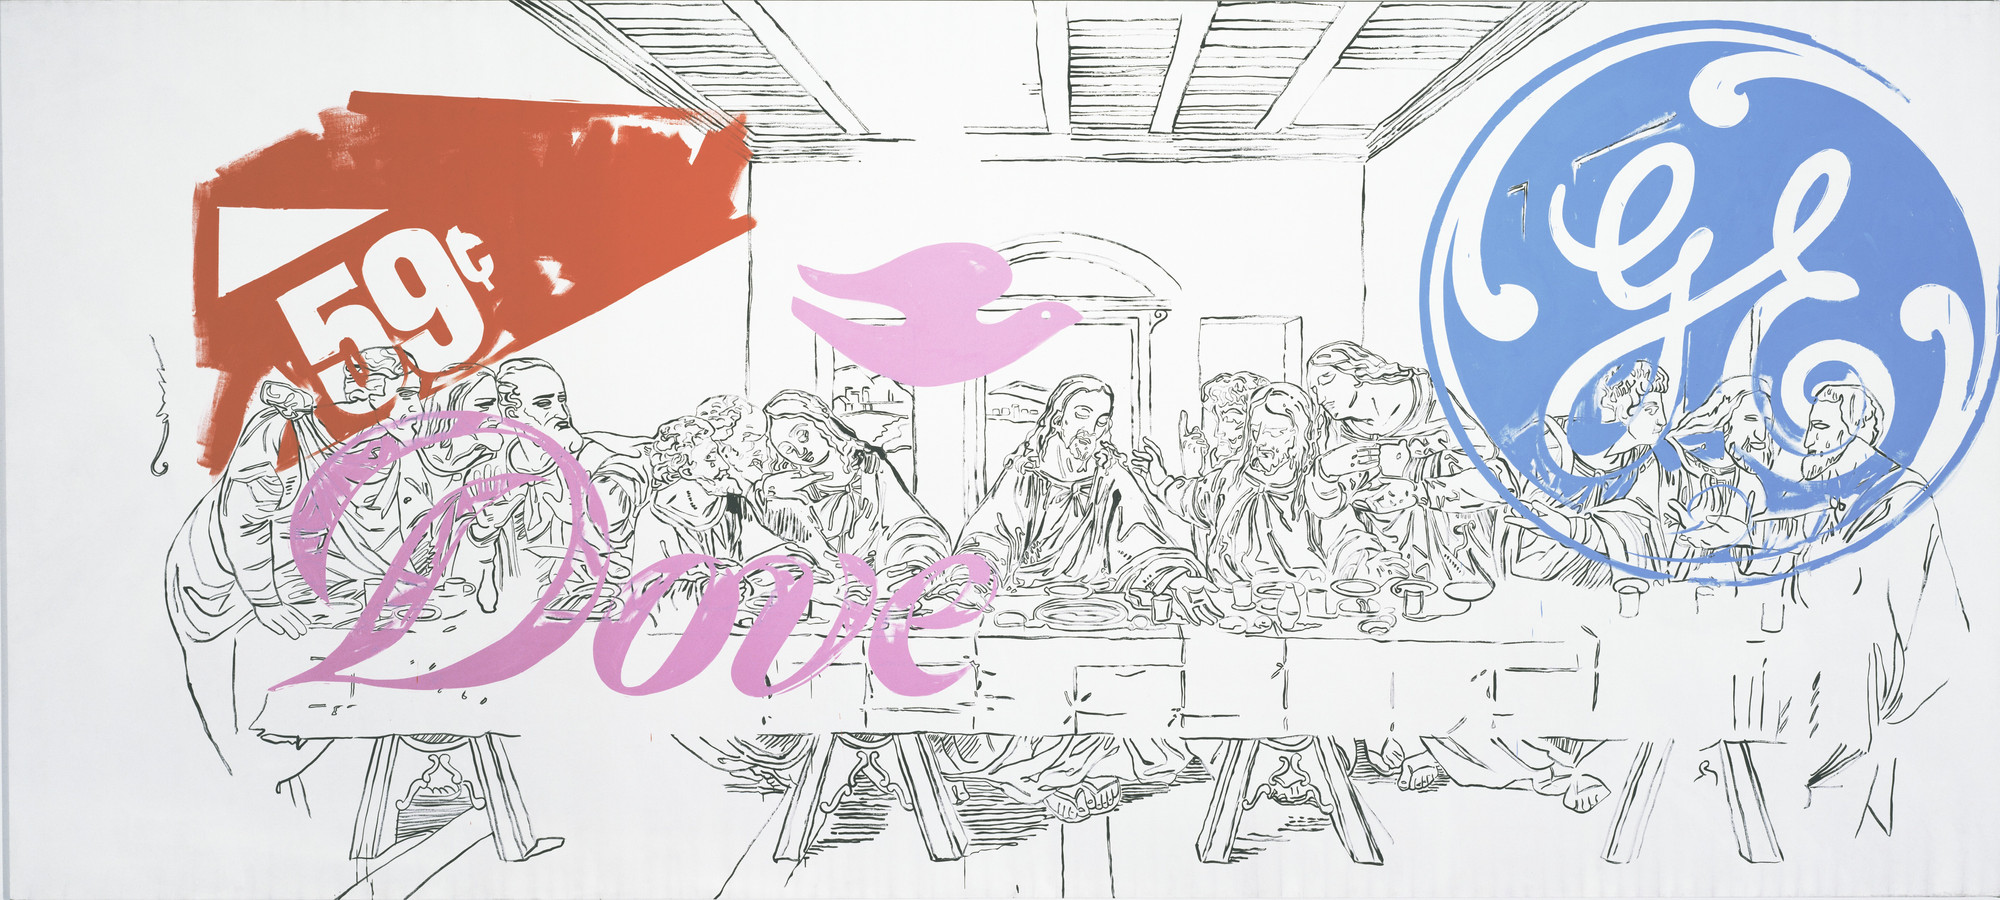 Andy Warhol. The Last Supper. 1986